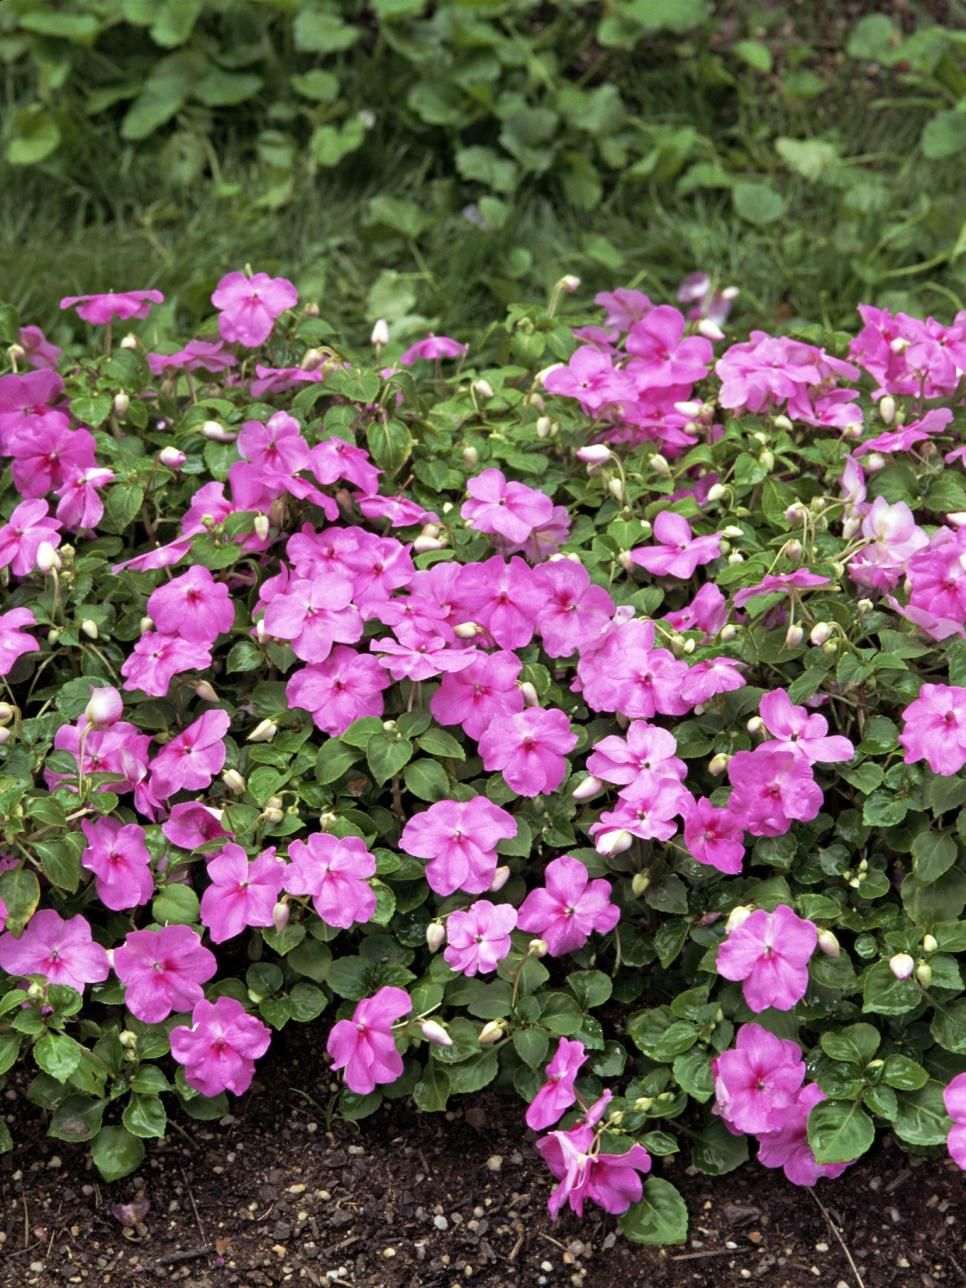 Annual flowers for shade gardens shade annuals pinterest from begonias to impatiens see which annual flowers thrive in shady spots plus get planting and growing information from the experts at hgtv gardens izmirmasajfo